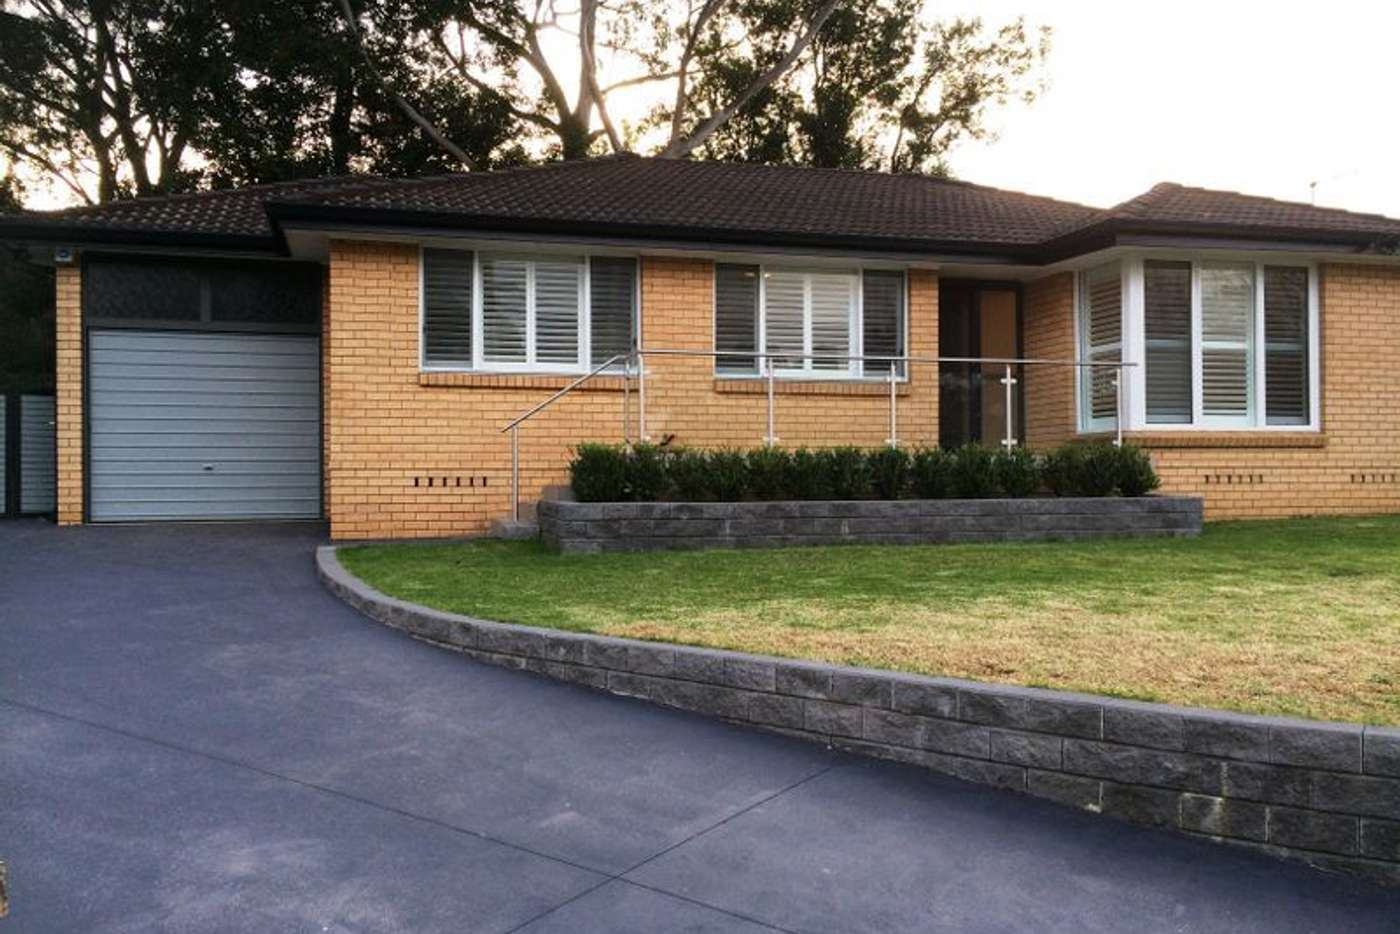 Main view of Homely house listing, 15 Suttor Place, Baulkham Hills NSW 2153